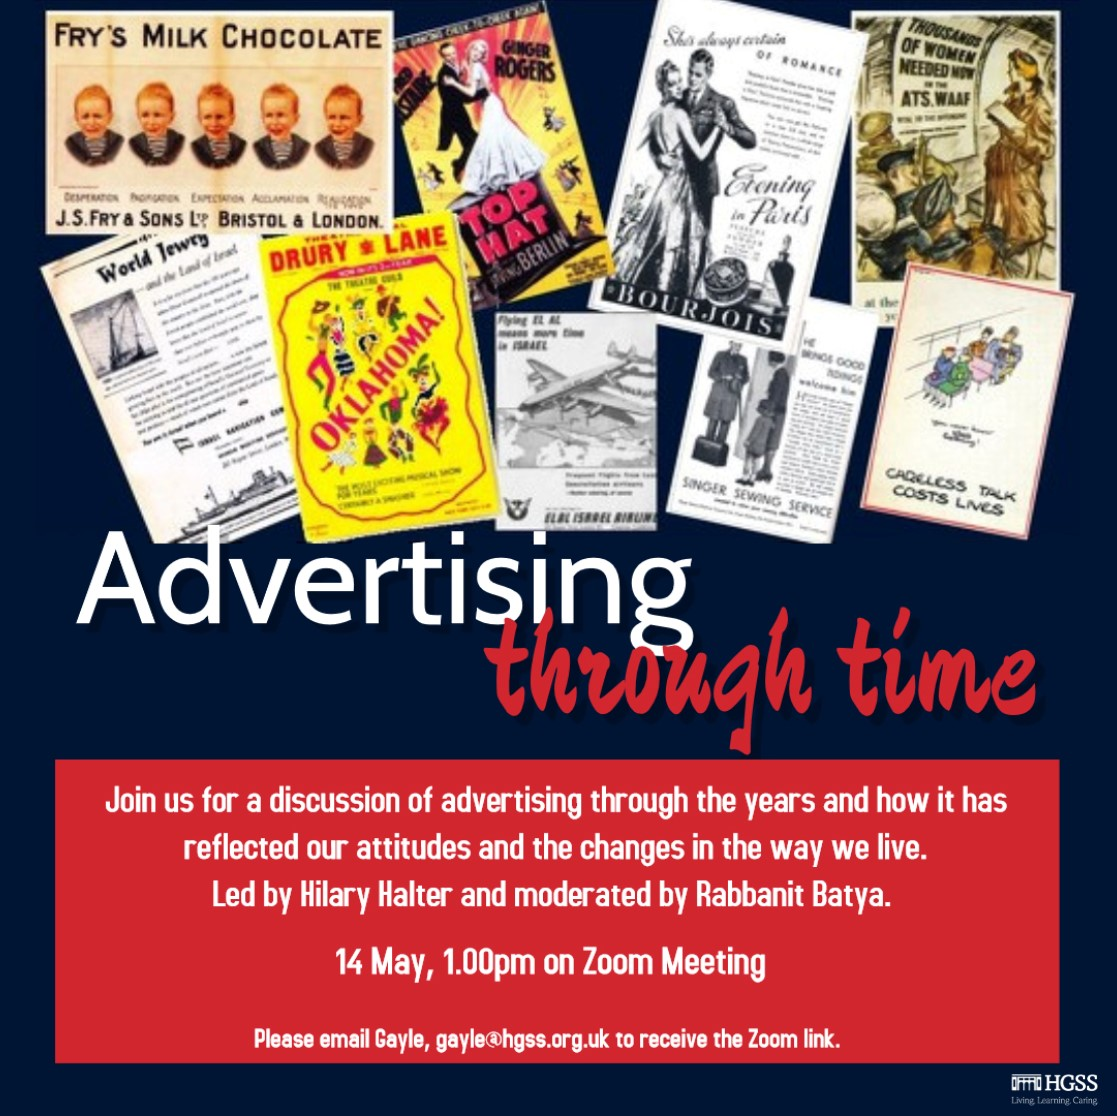 Advertising through time with Hilary Halter @ Online (Contact Gayle for link)